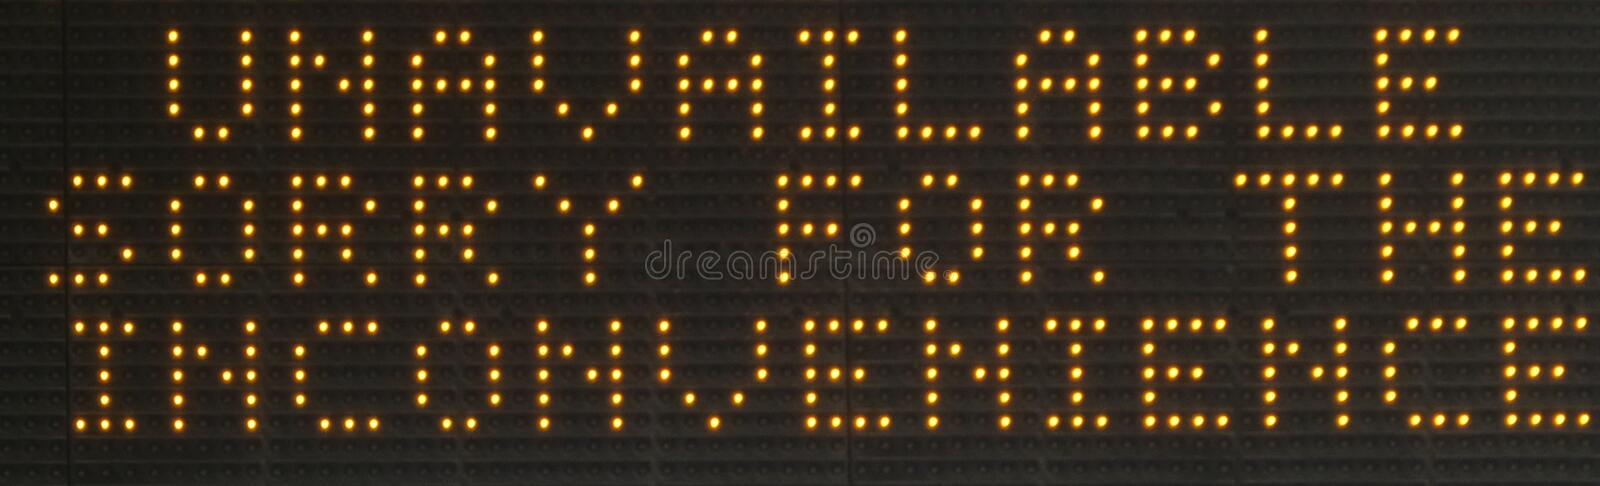 `Unavailable` LED dot matrix sign display. Dot matrix sign of LED lamp bulbs displaying the message `Unavailable sorry for the inconvenience`. Zoomed in on a royalty free stock photos